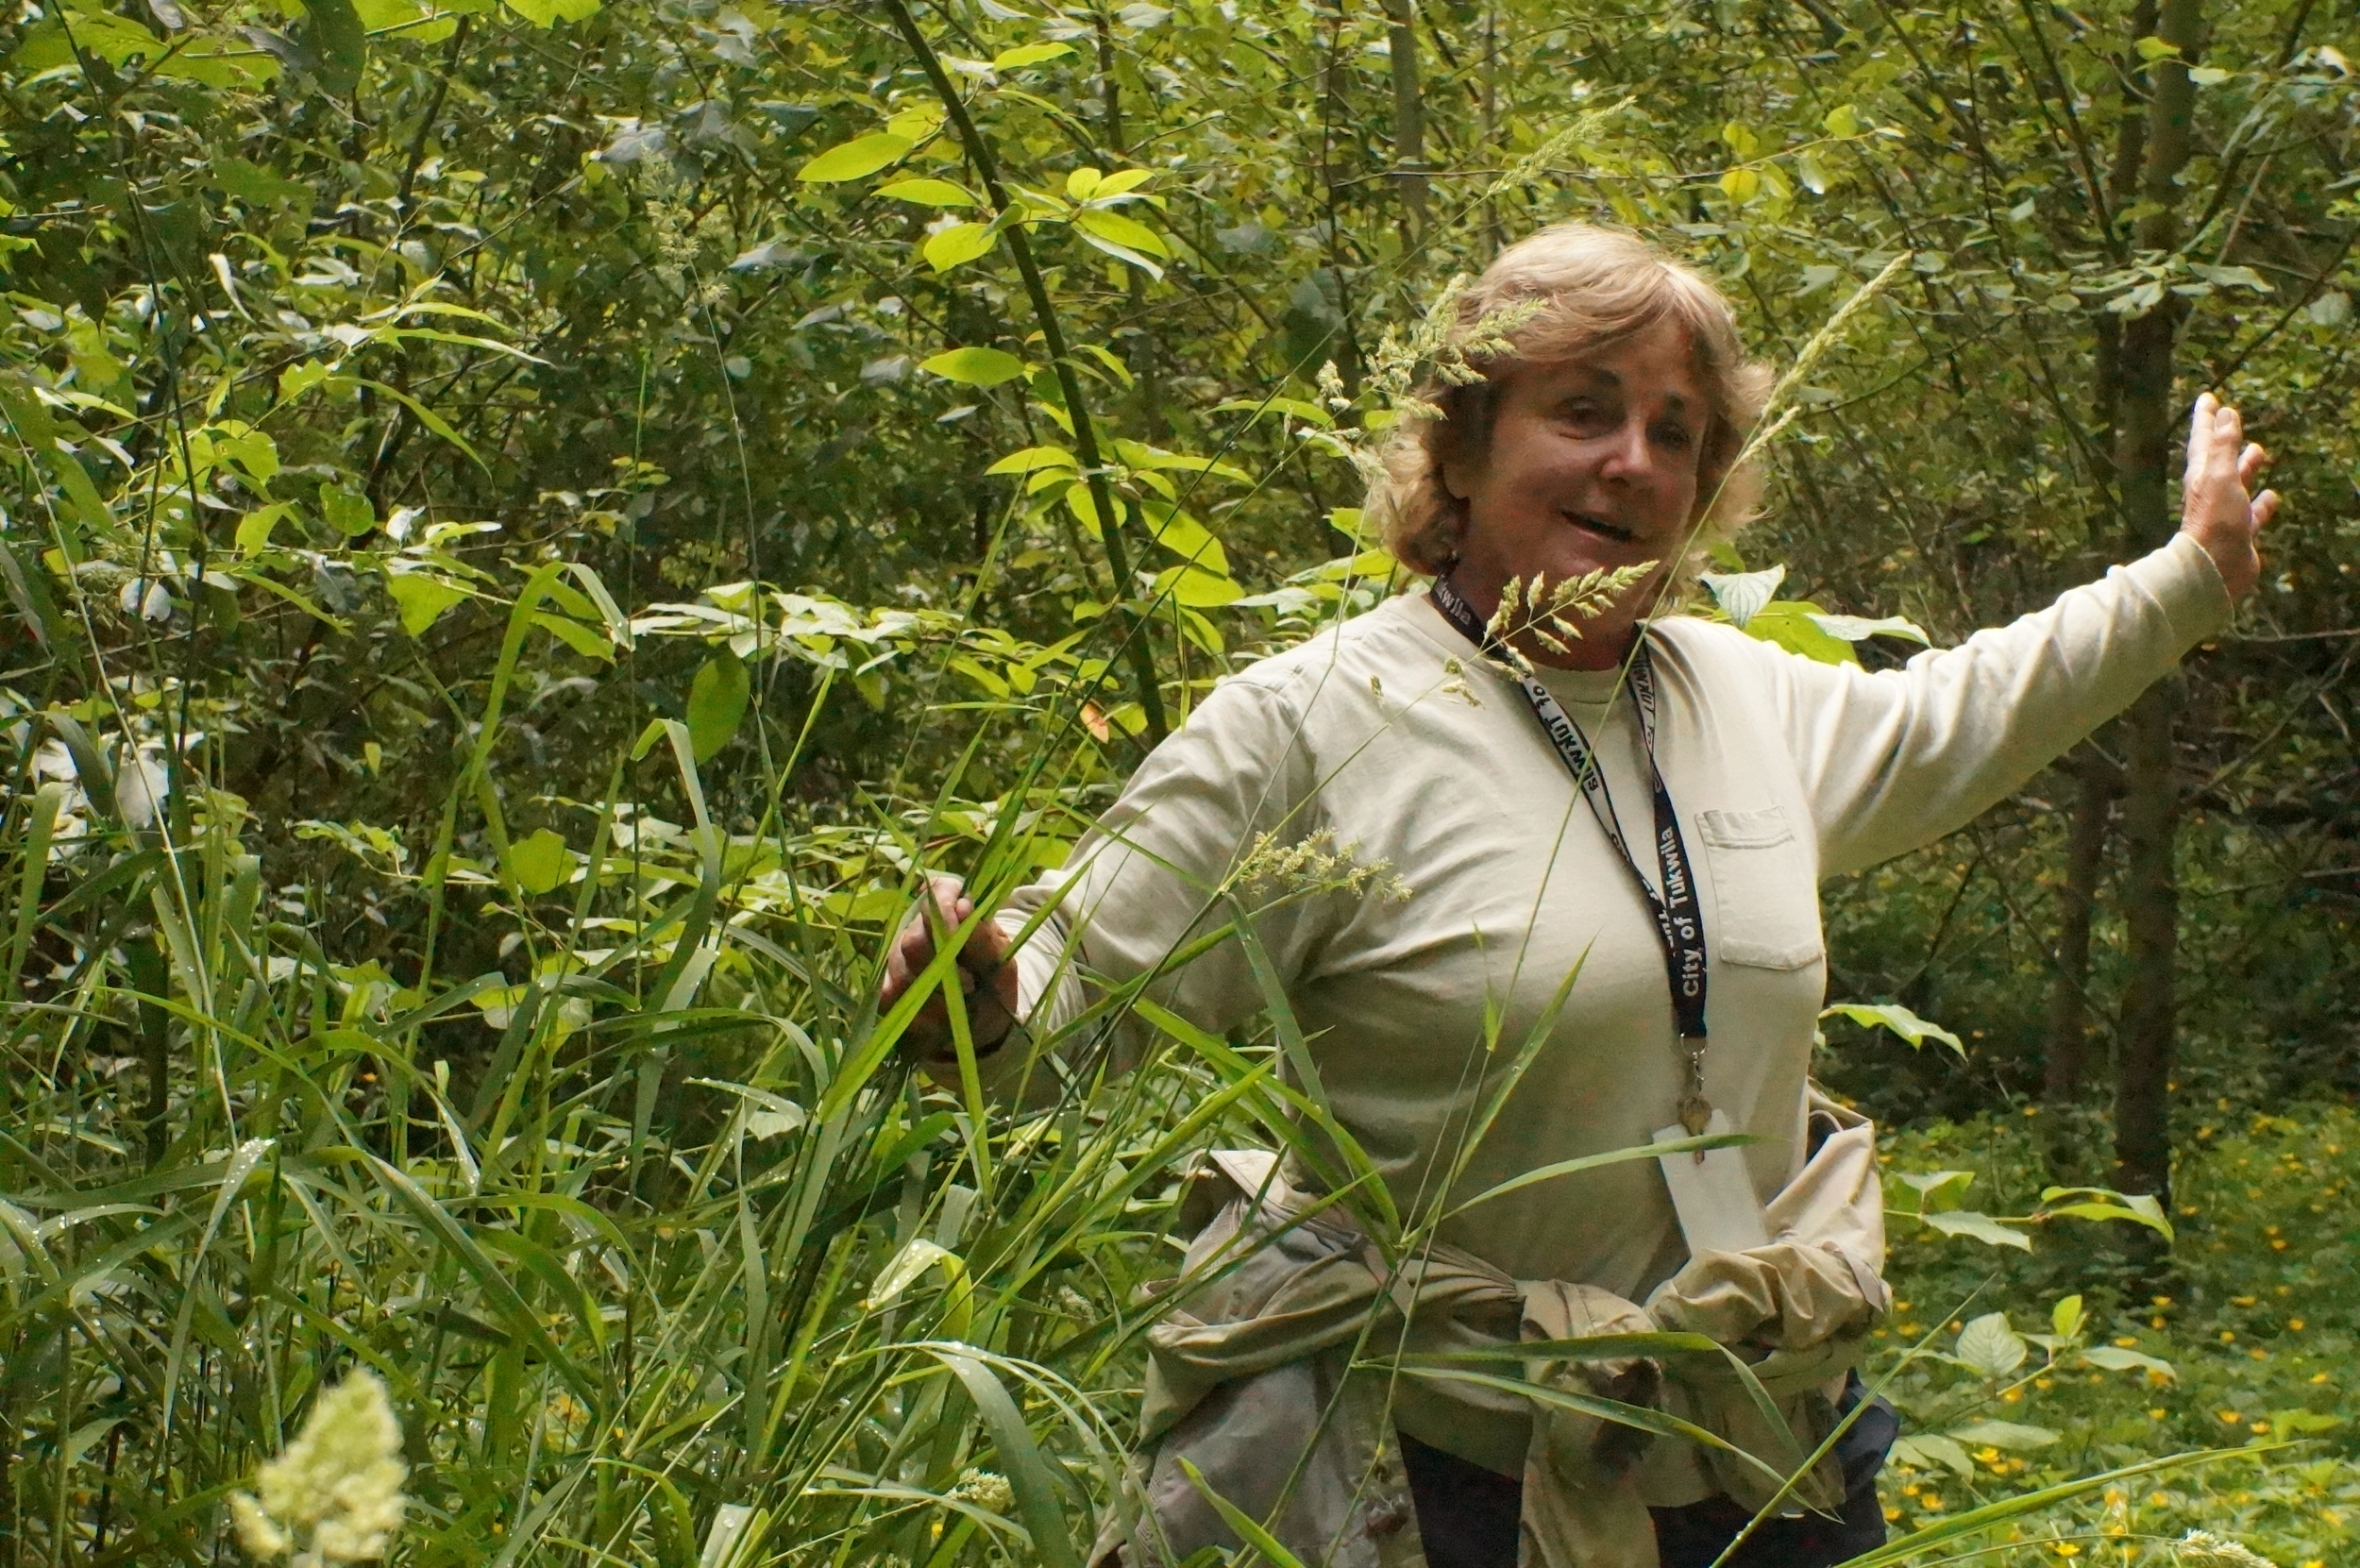 Sandra Whiting teaches us about noxious reed canary grass / Phalaris arundinacea.